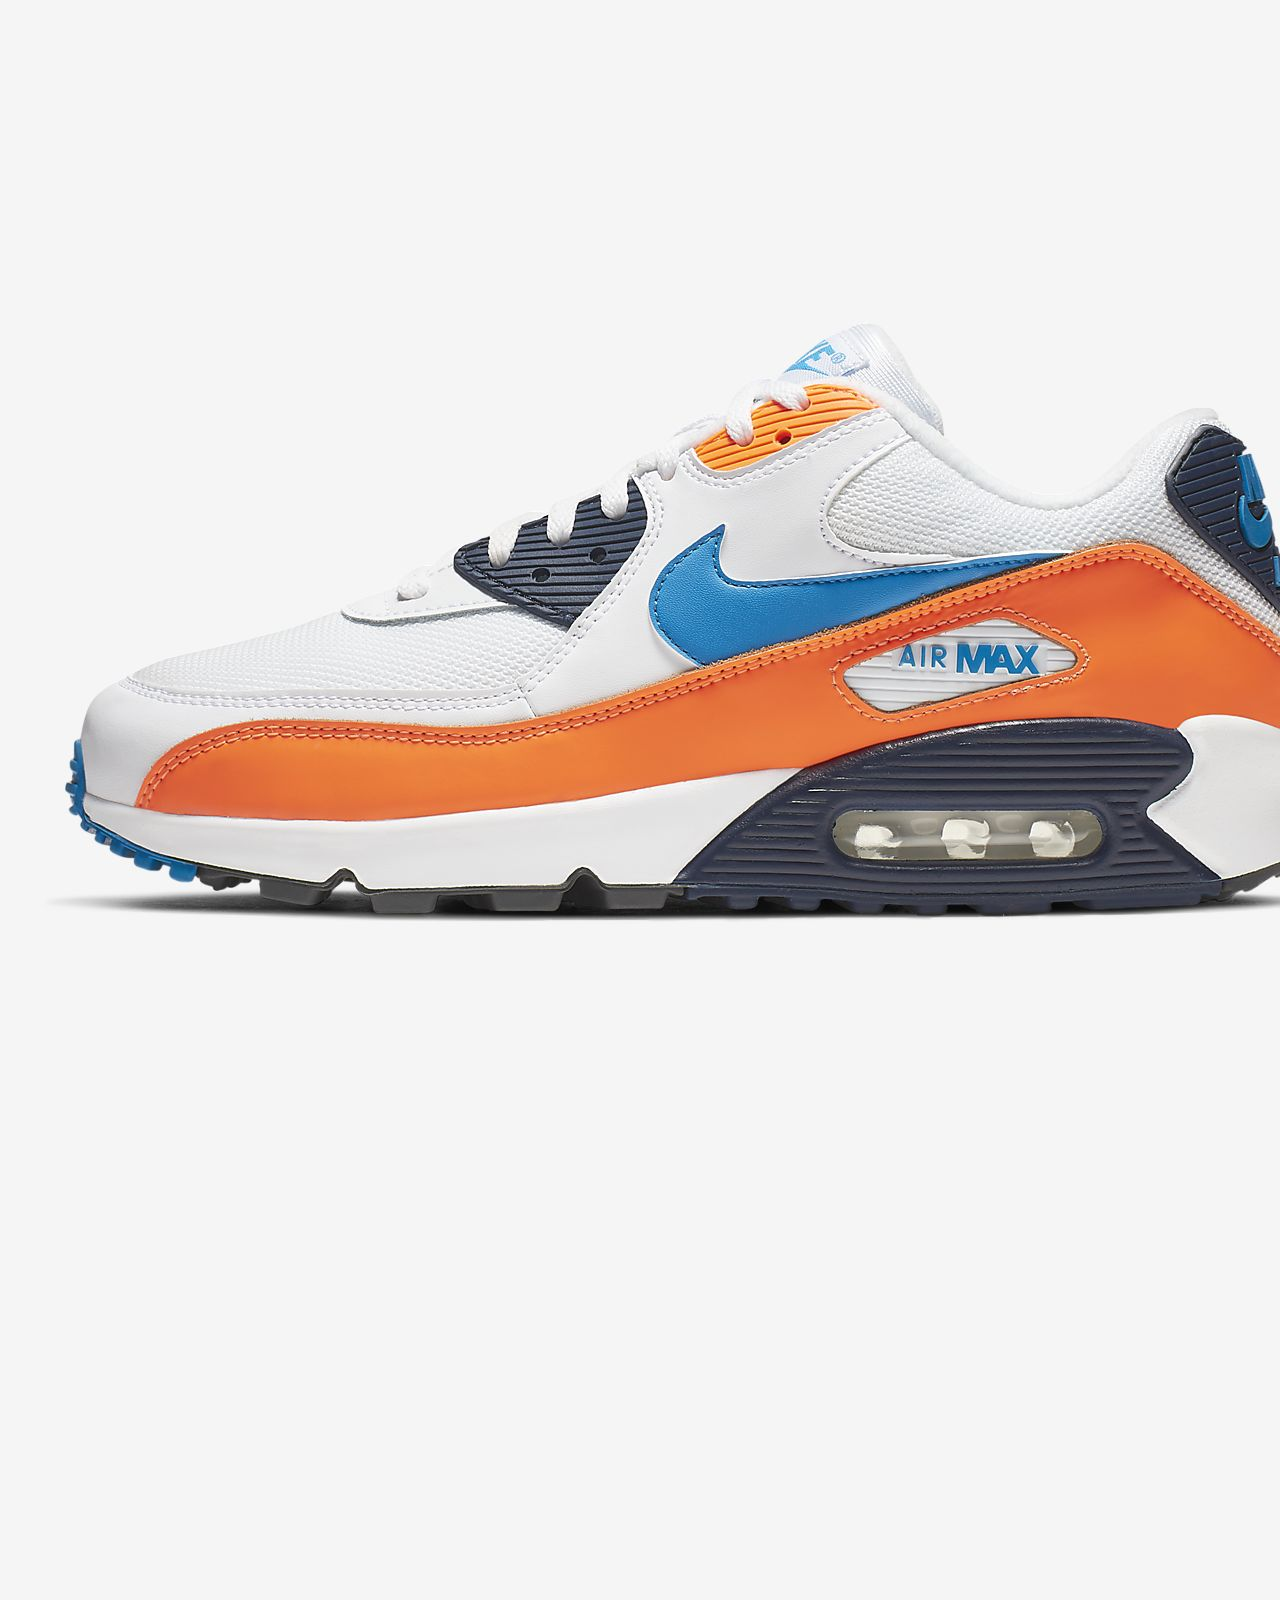 6ba6118d Nike Air Max 90 Essential Men's Shoe. Nike.com